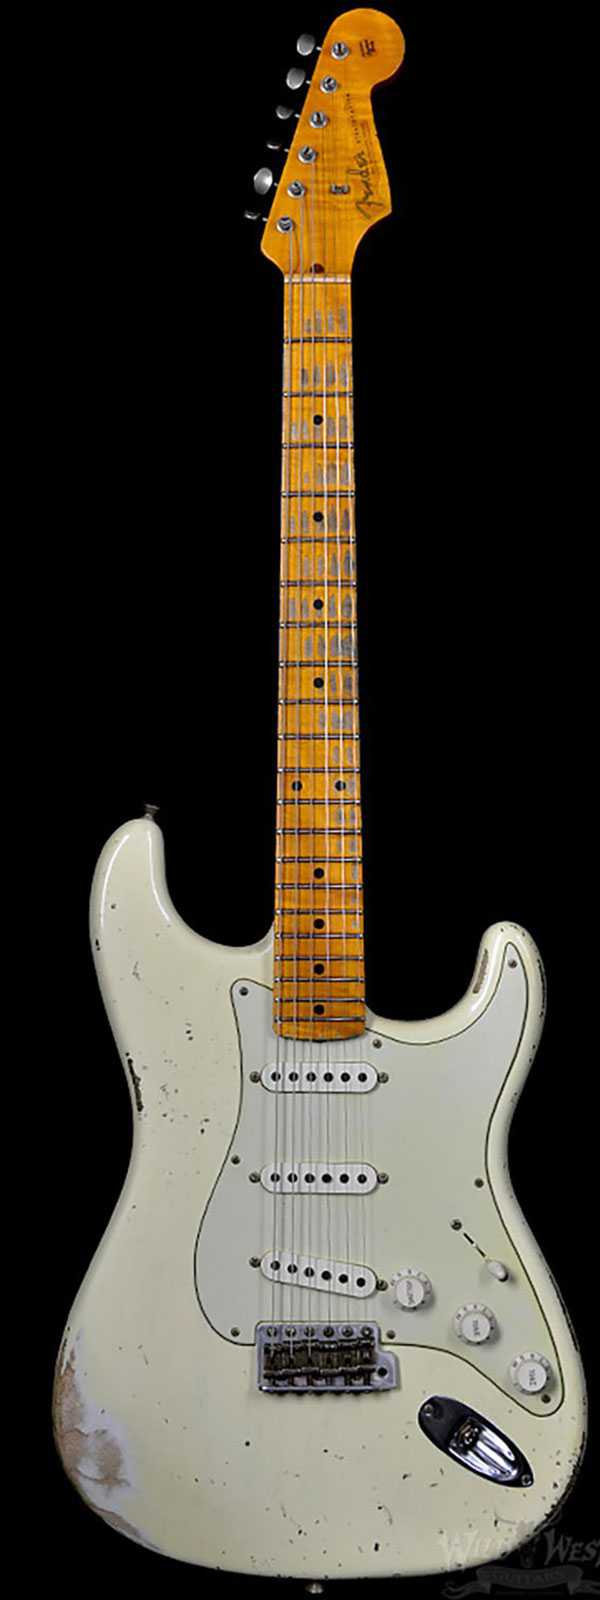 Fender 1956 Stratocaster Heavy Relic AA Flame Maple Neck Vintage White